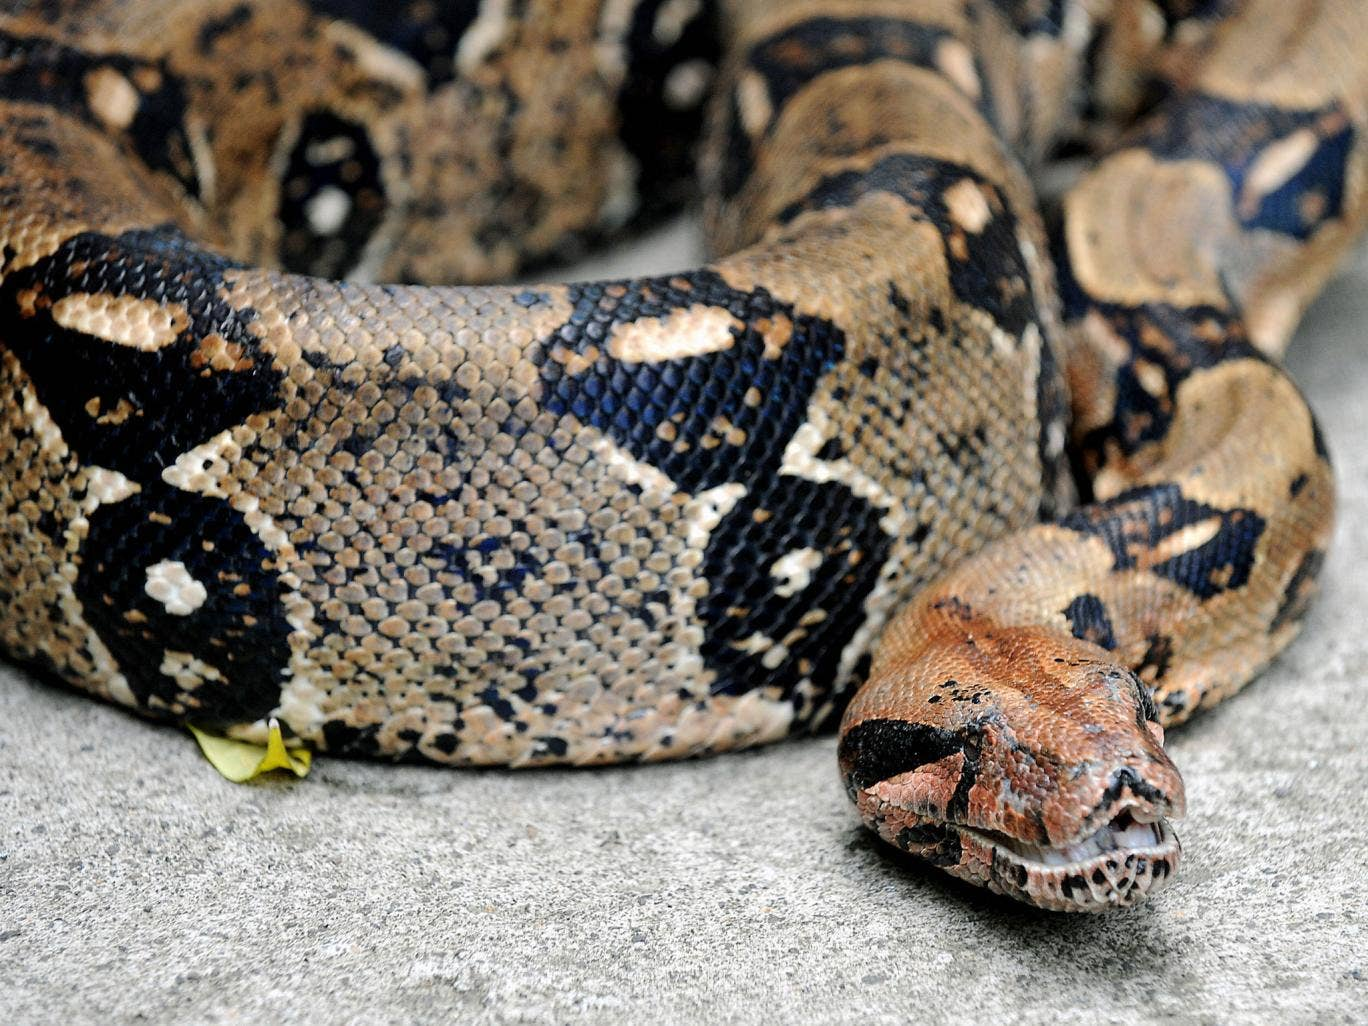 """Although Petzy (not pictured) is non-venomous police are warning members of the public not to approach her as she """"may become aggressive if it feels threatened""""."""